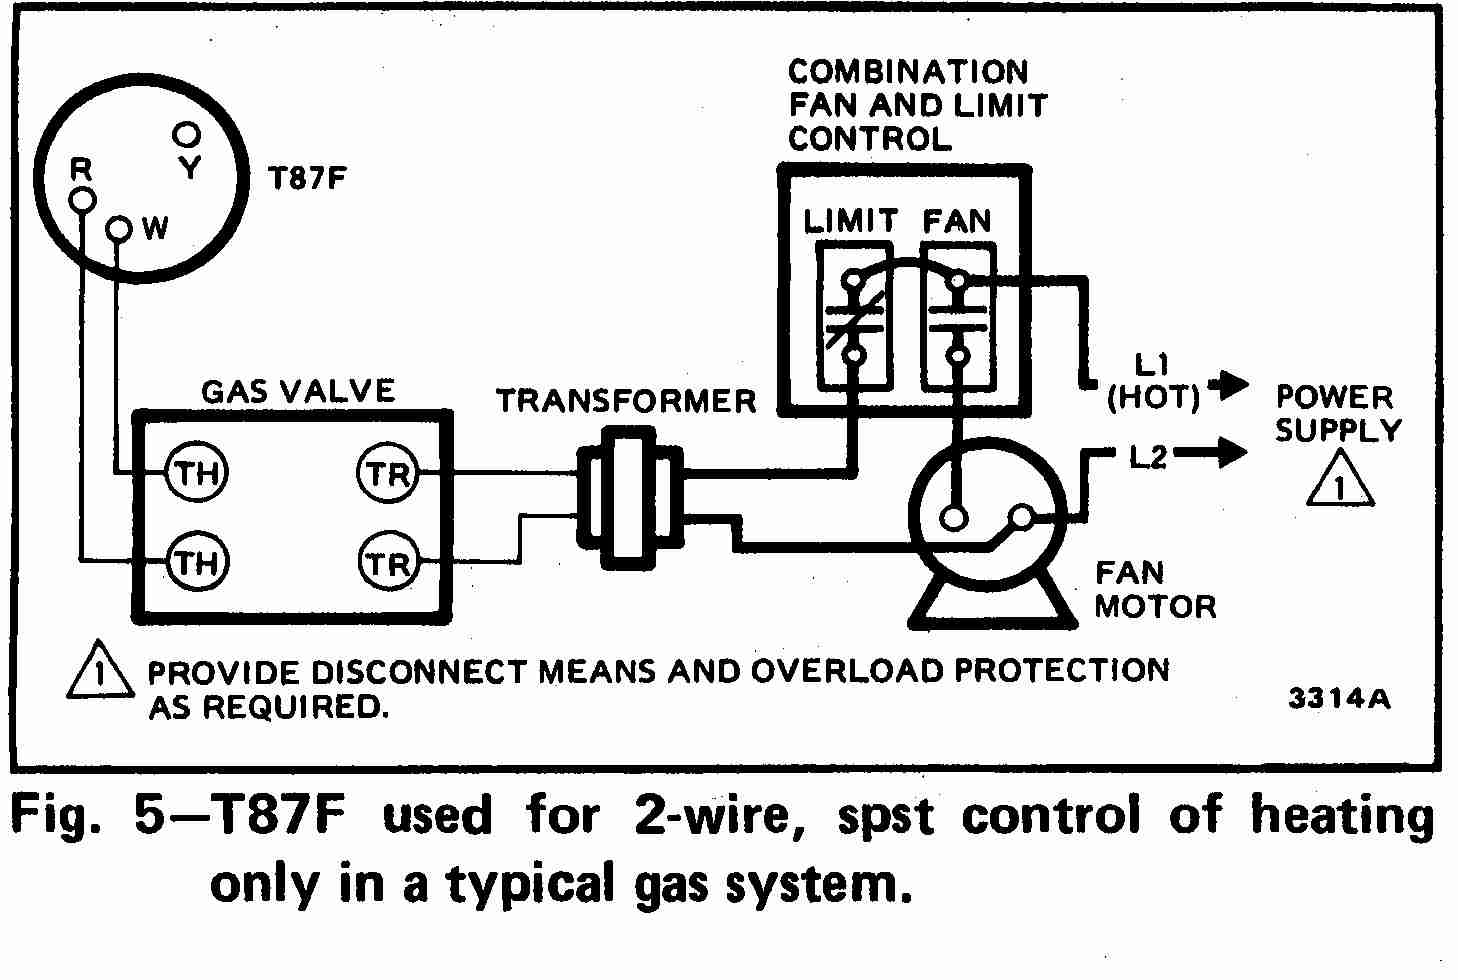 TT_T87F_0002_2Wg_DJF room thermostat wiring diagrams for hvac systems 2 wire thermostat diagram at bayanpartner.co